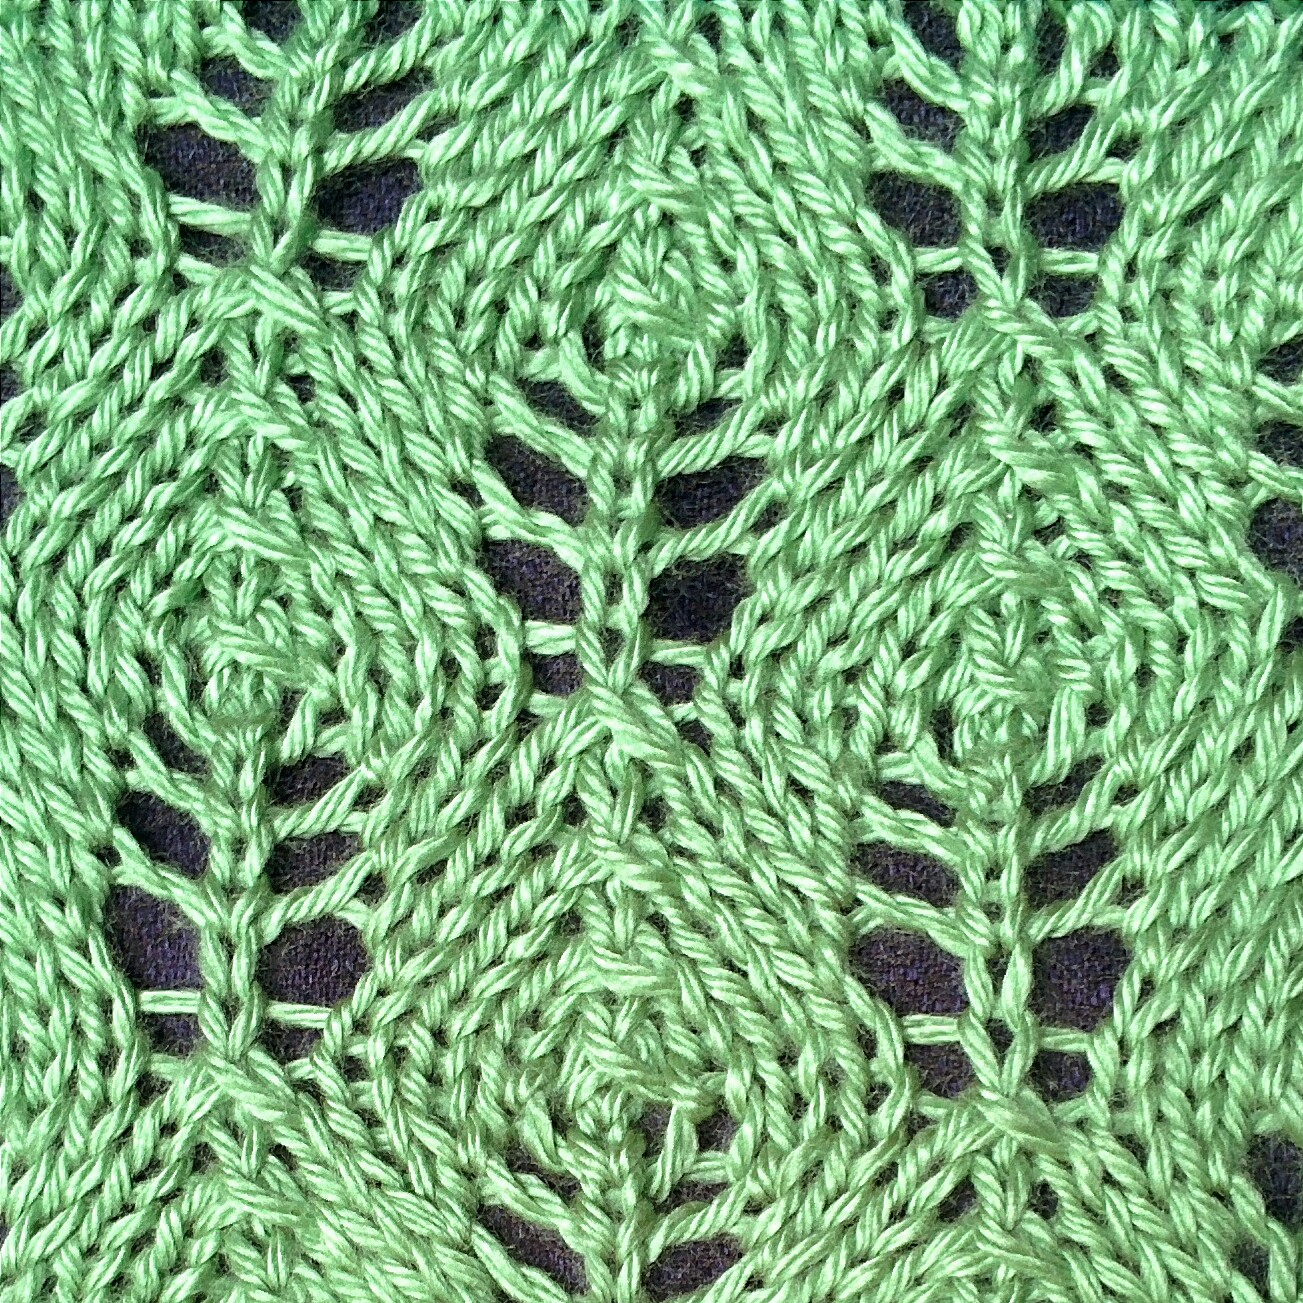 Flower Bud Lace Stitch